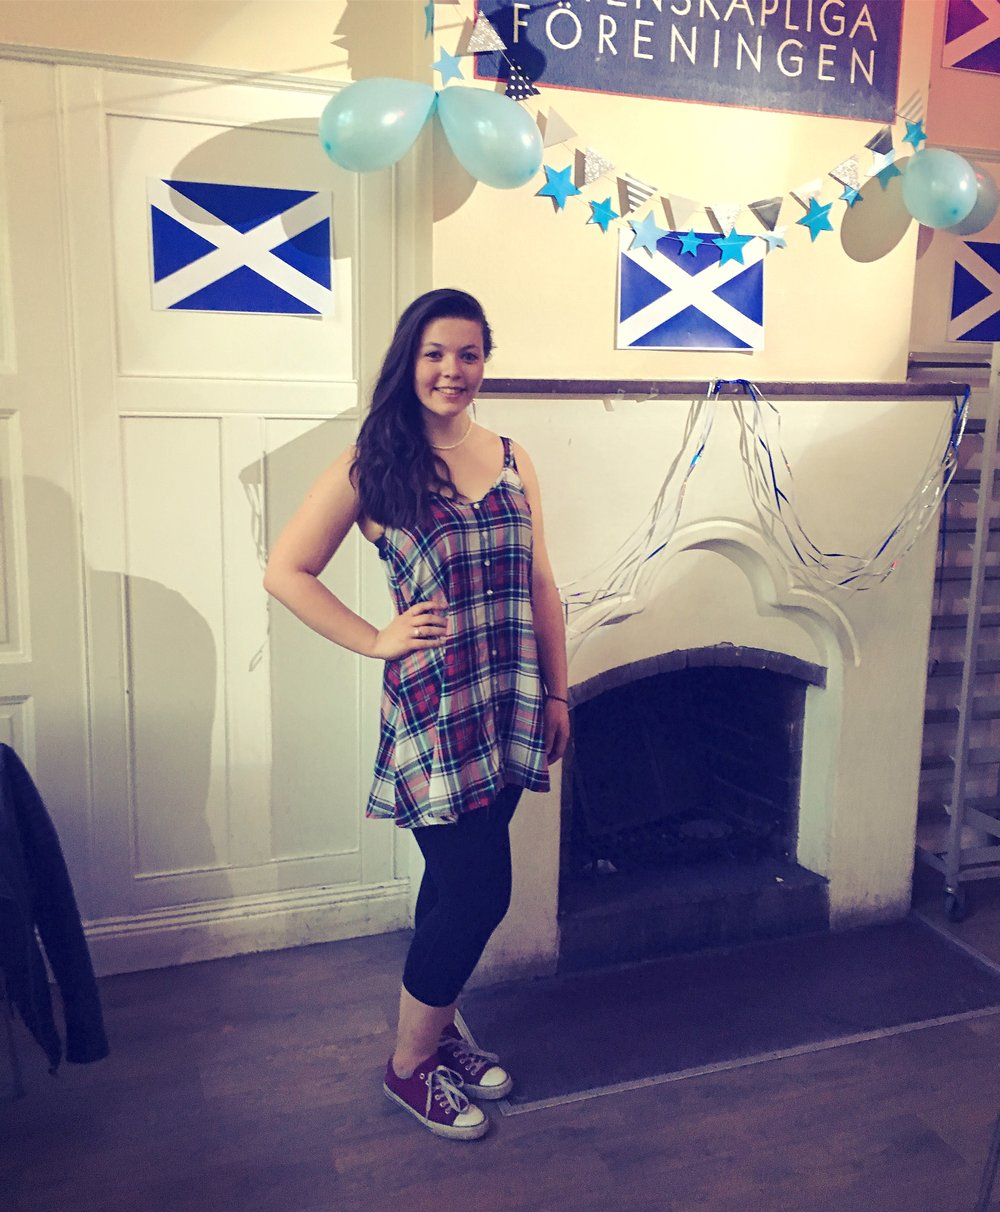 Ambassador Nicola was the Scottish night event coordinator at 'Bojan' this spring